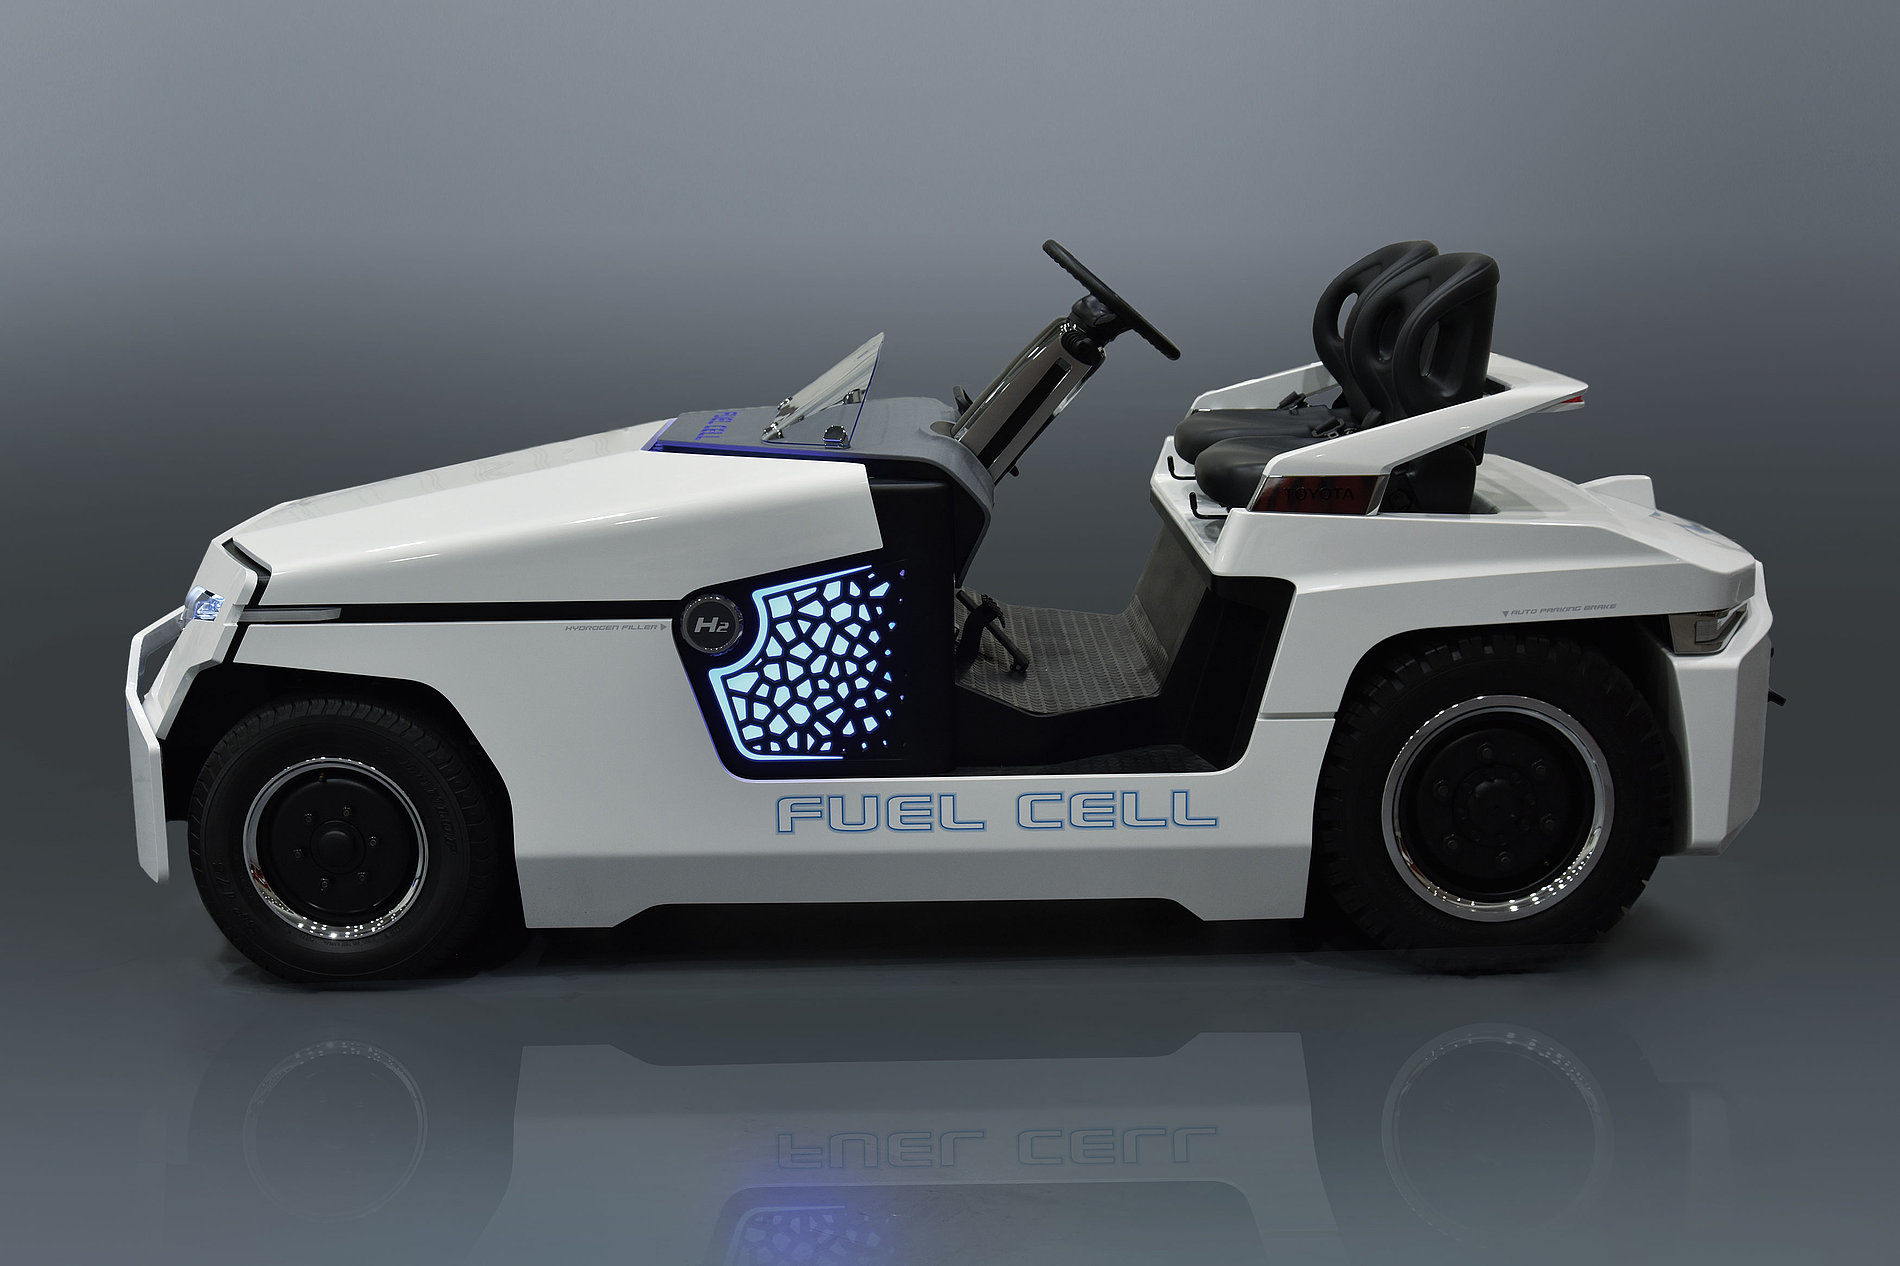 Fuelcell Towing Tractor | Red Dot Design Award